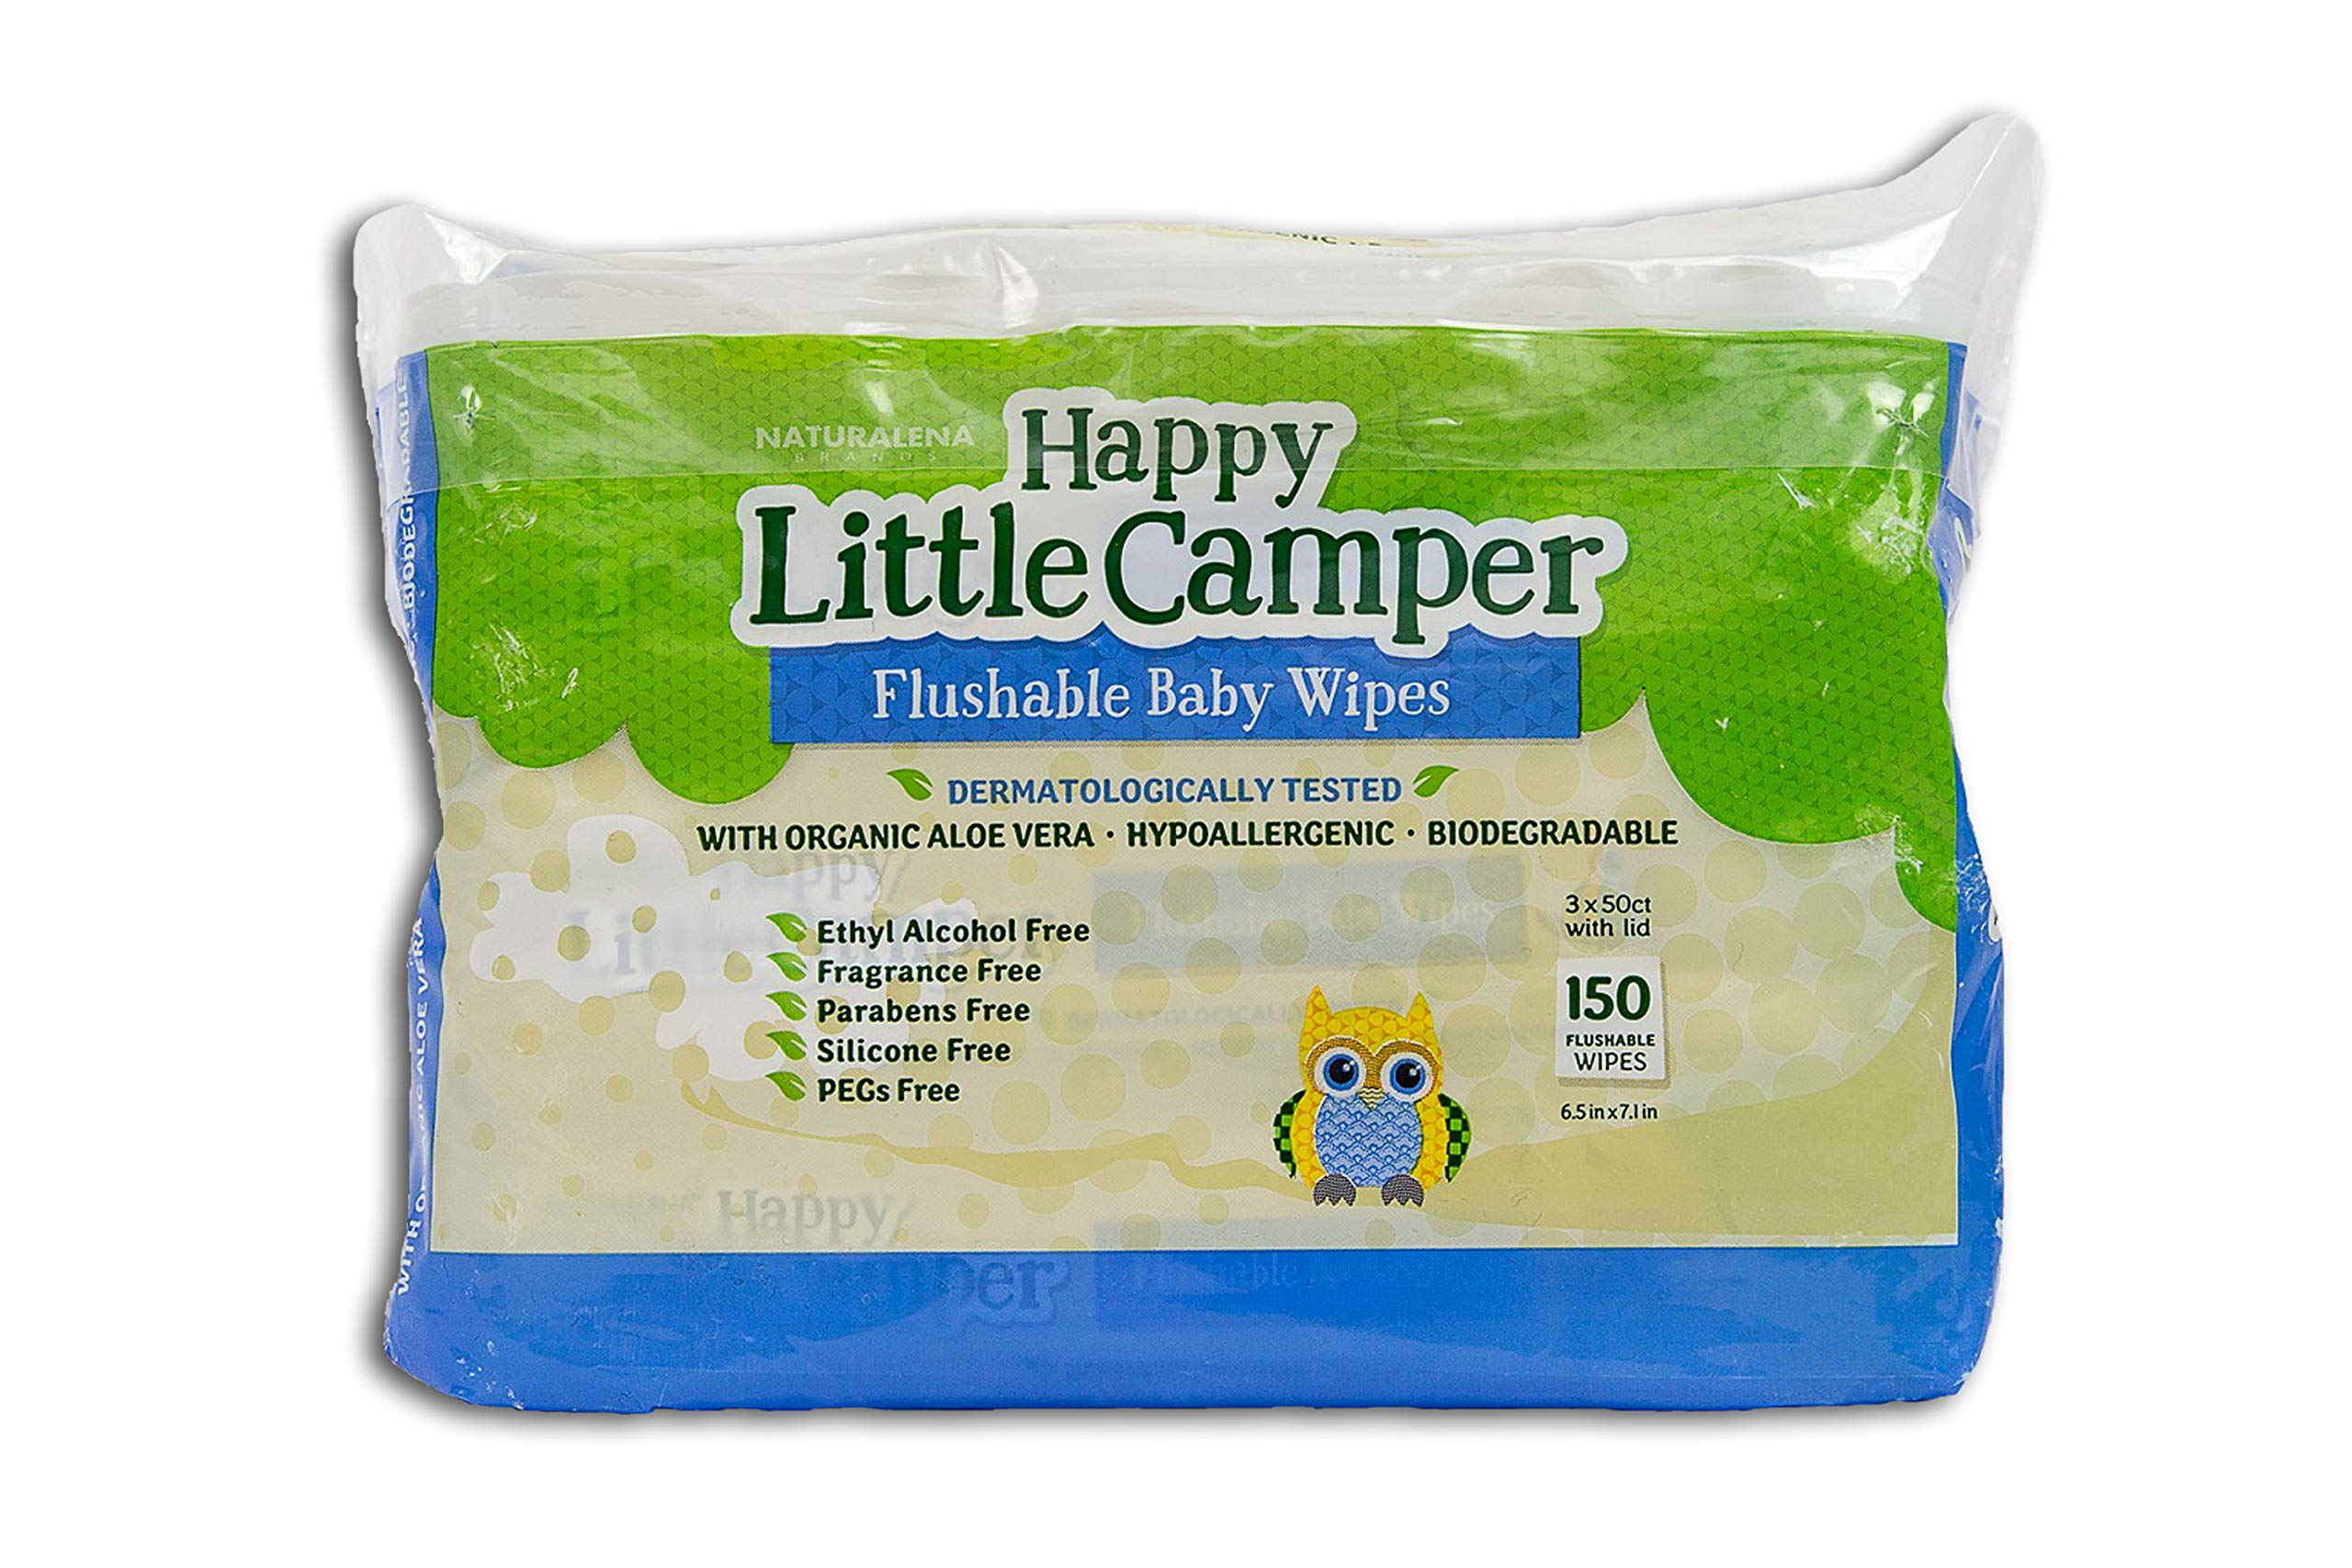 Happy Little Camper Flushable Baby Wipes with Organic Aloe, Septic Safe, 150Count by Happy Little Camper